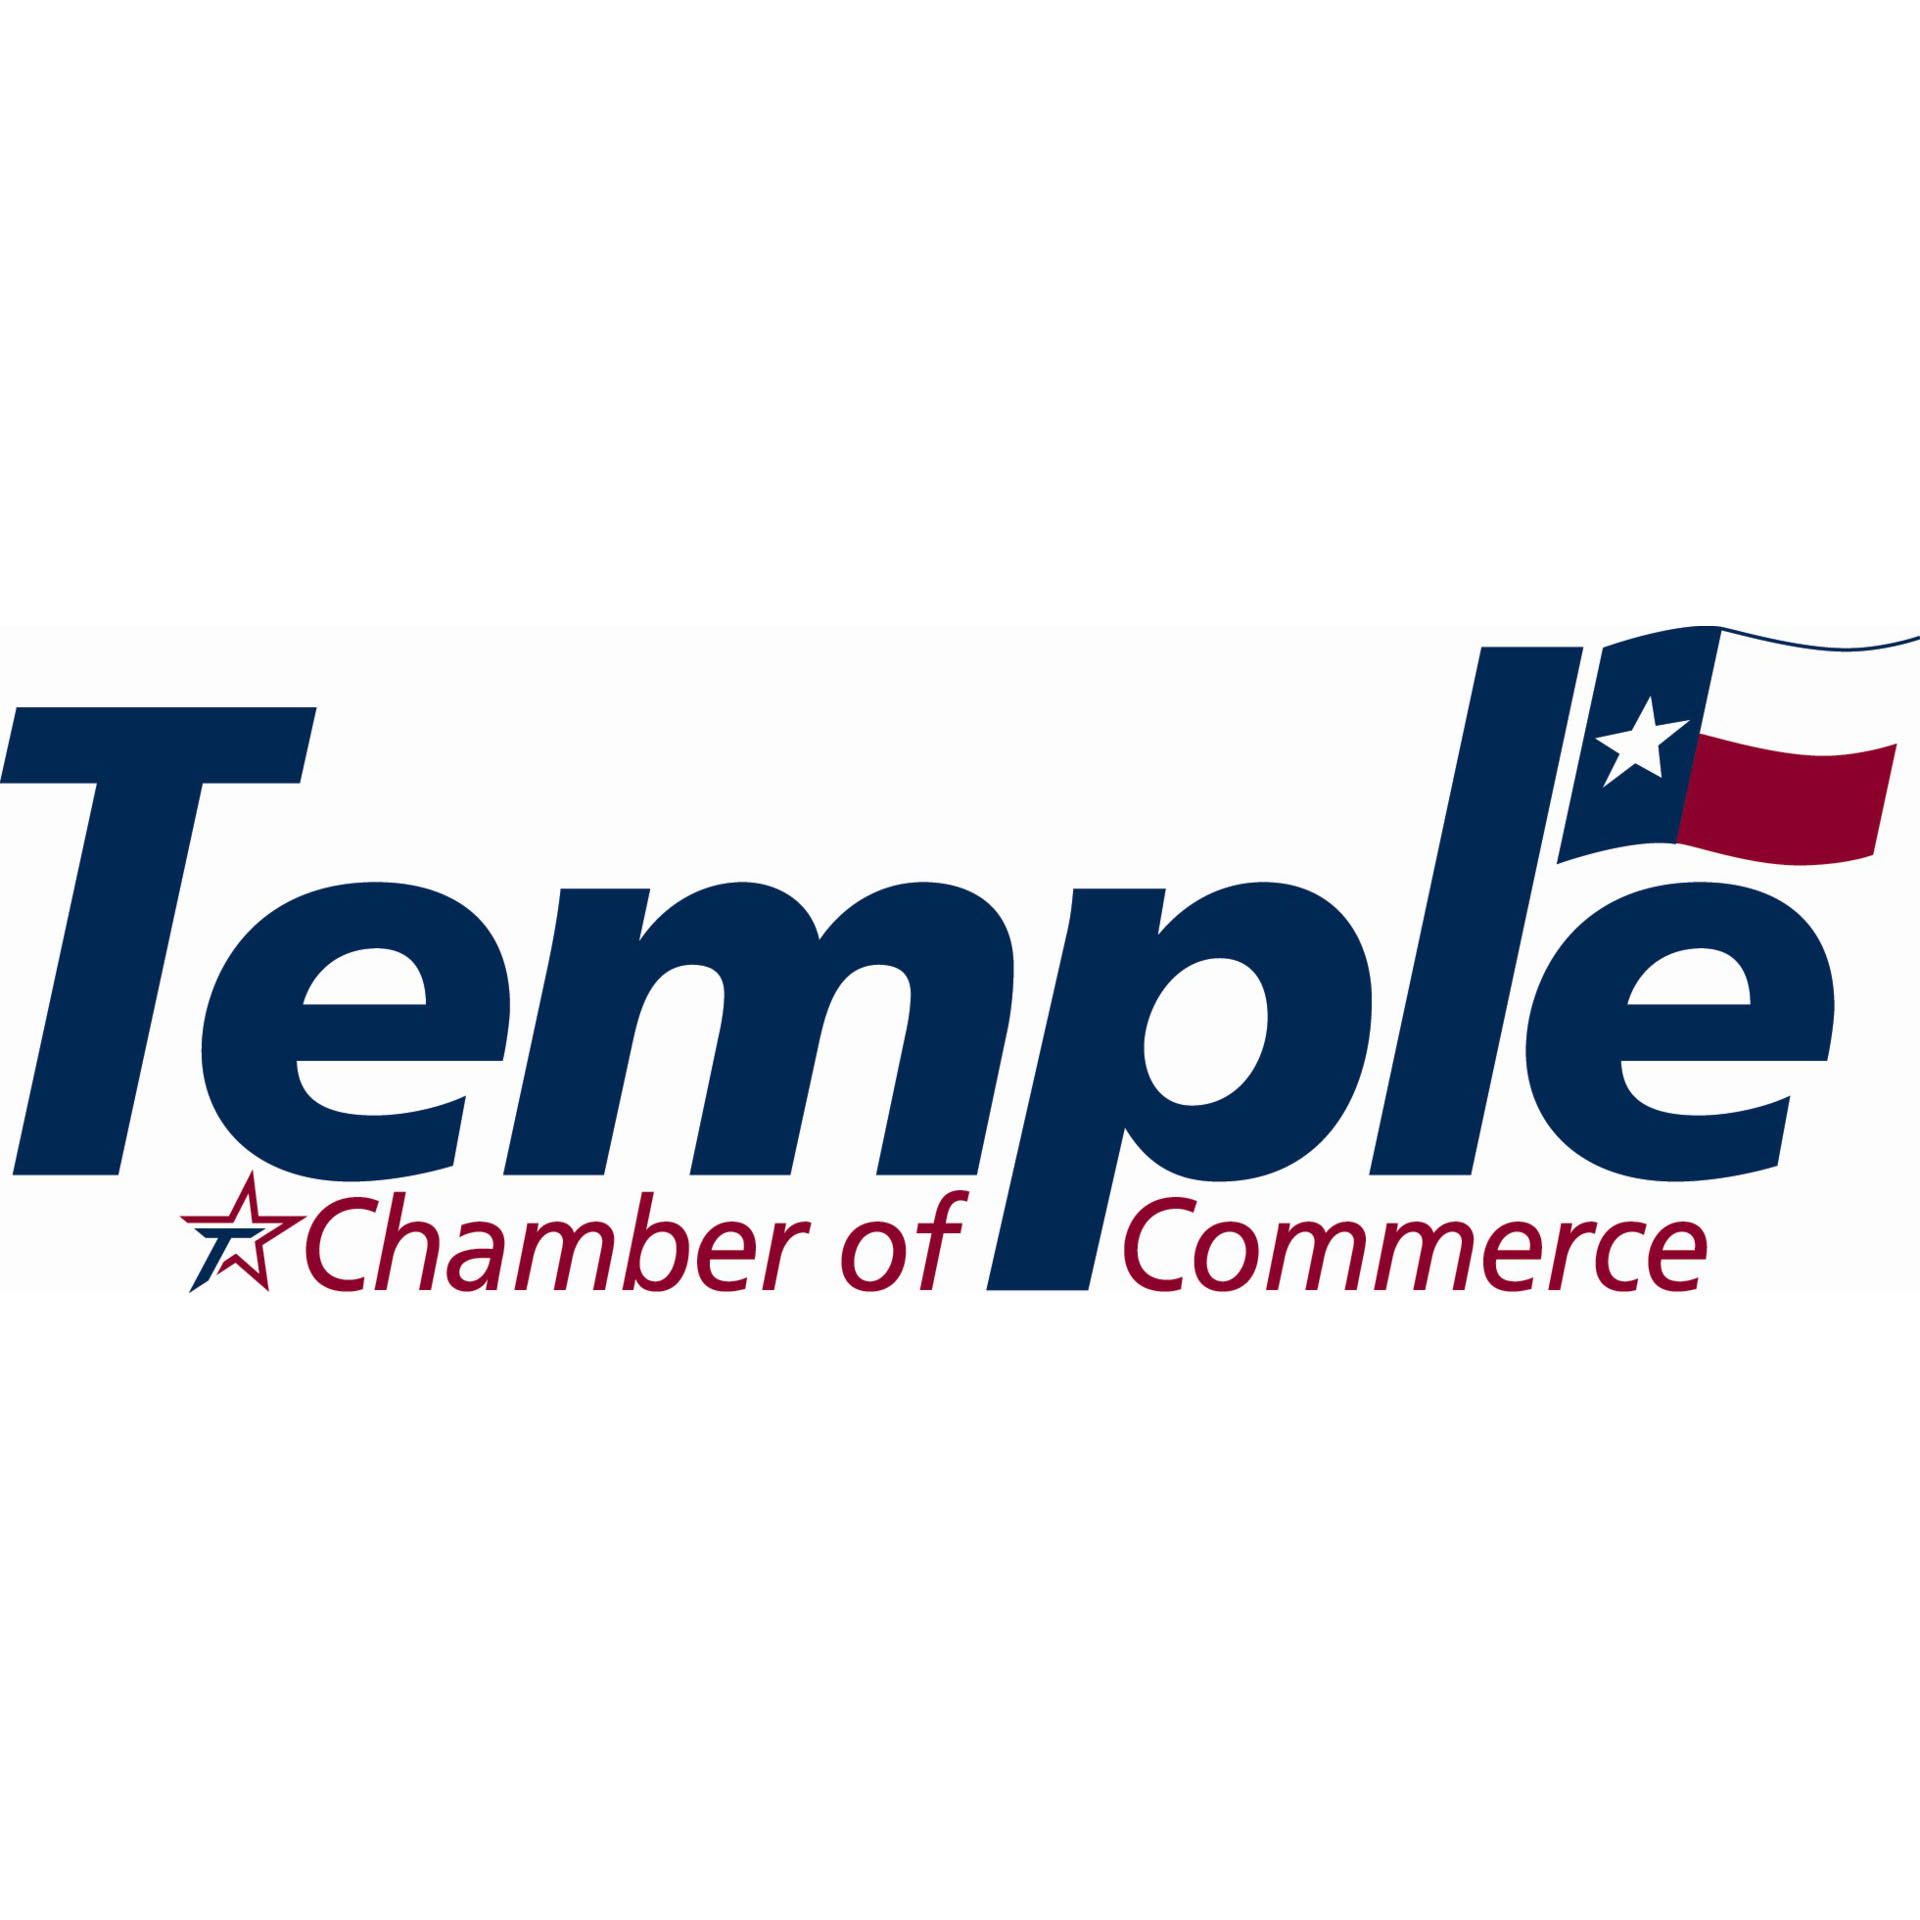 Temple-chamber-of-commerce-logo-1.jpg